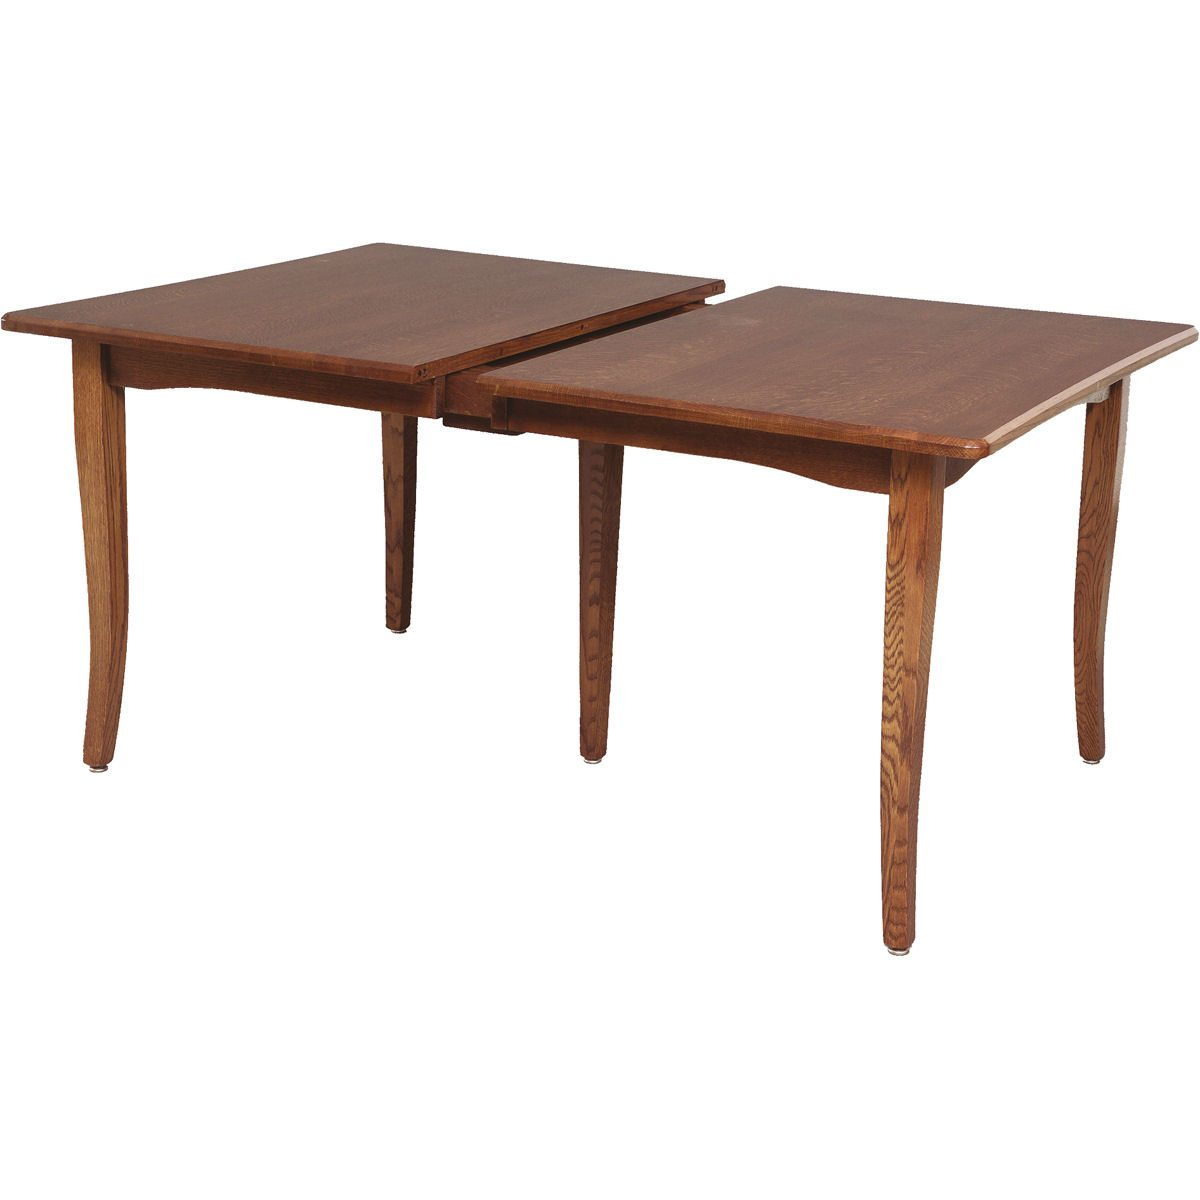 Bunker Hill Dining Collection G06-202 Dining Table with Leaves